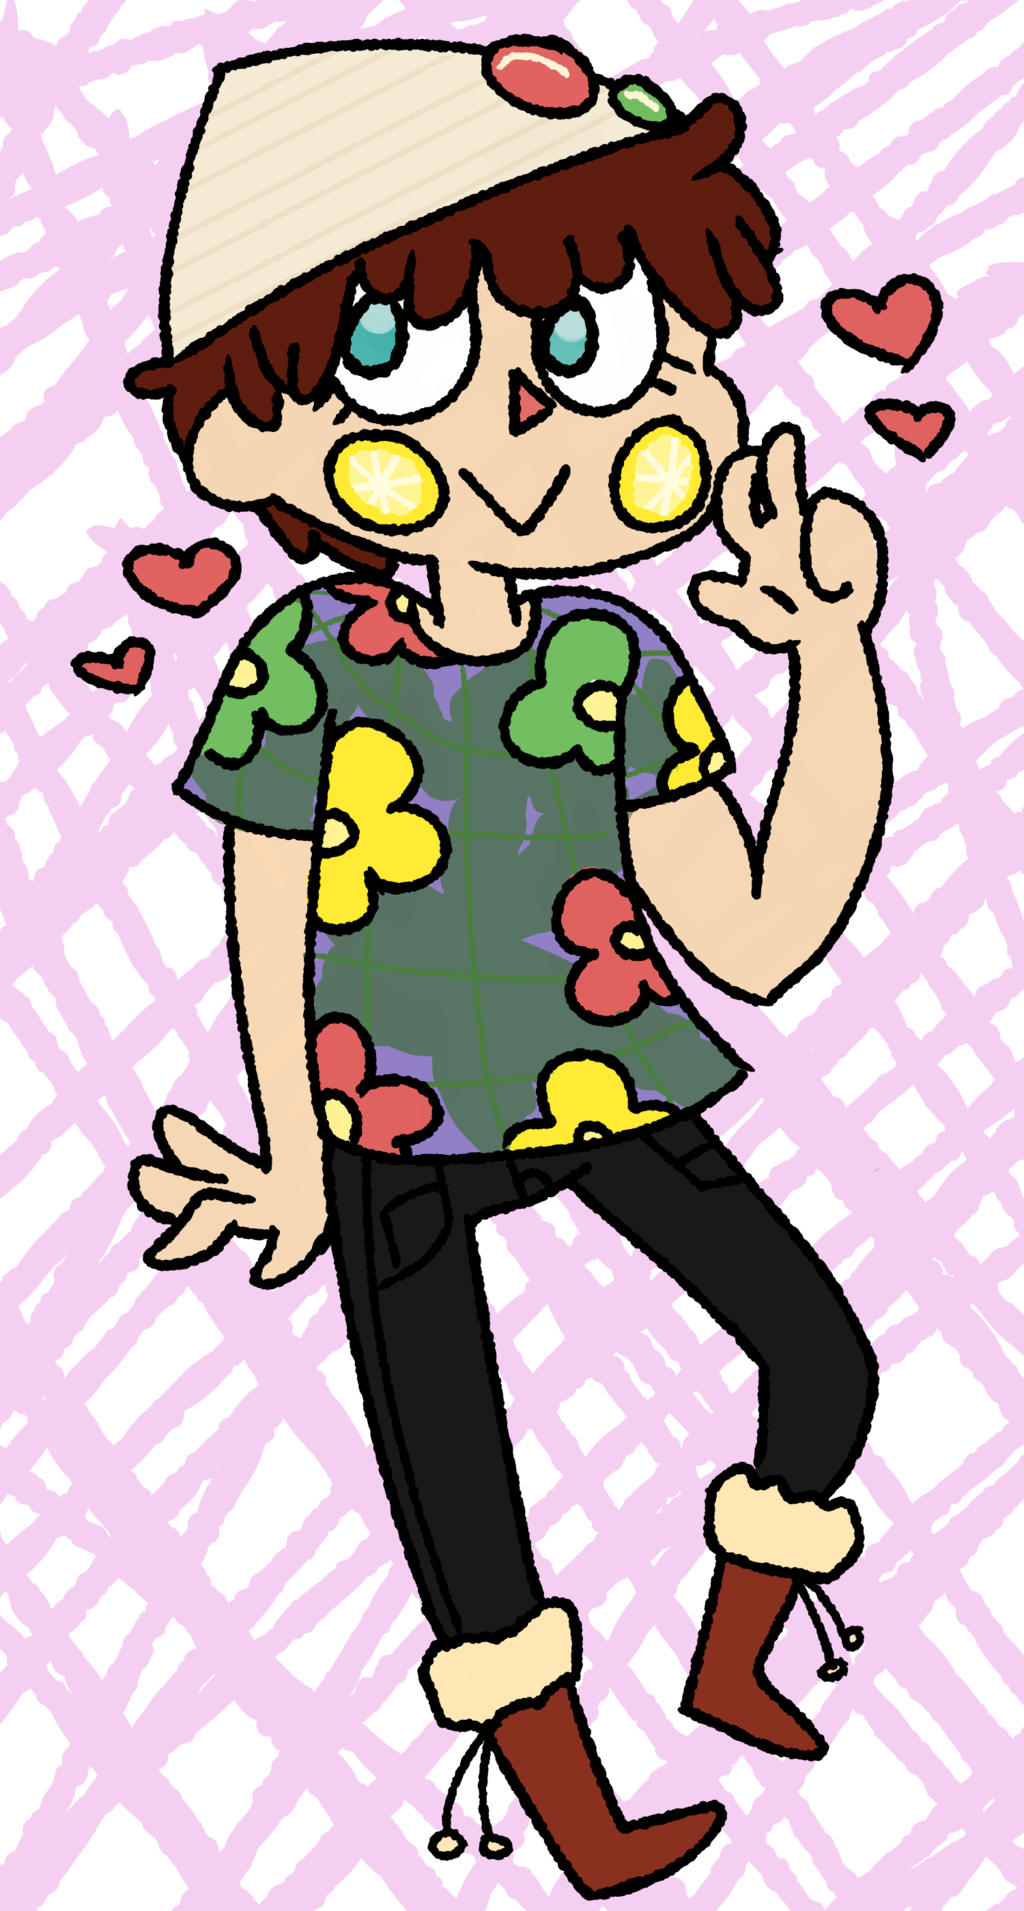 my unfashionable acnl character by ANABI0SIS on DeviantArt.